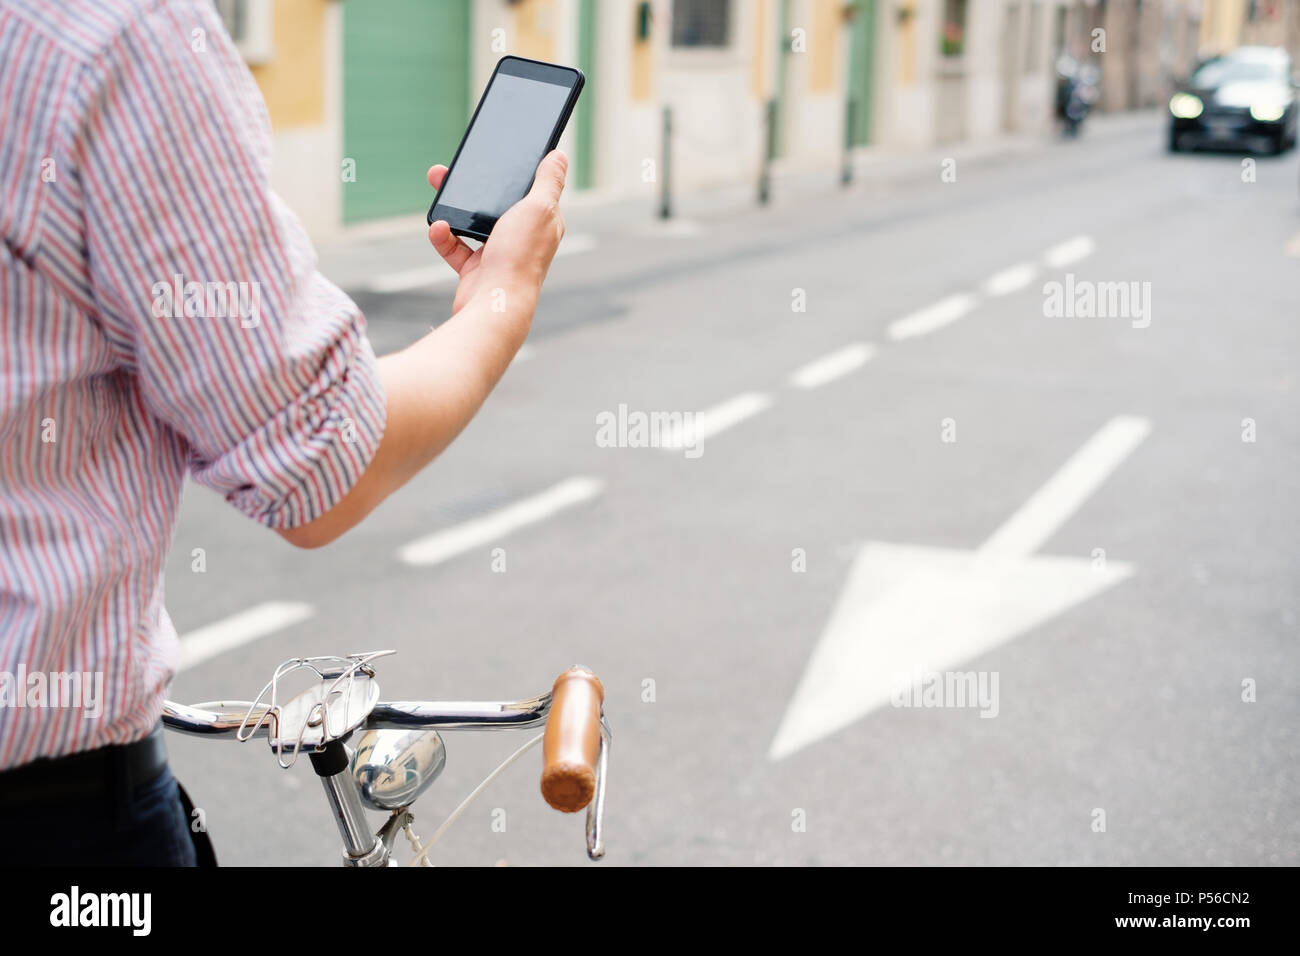 Dangerous mobile phone distraction in the city traffic , road safety concept - Stock Image